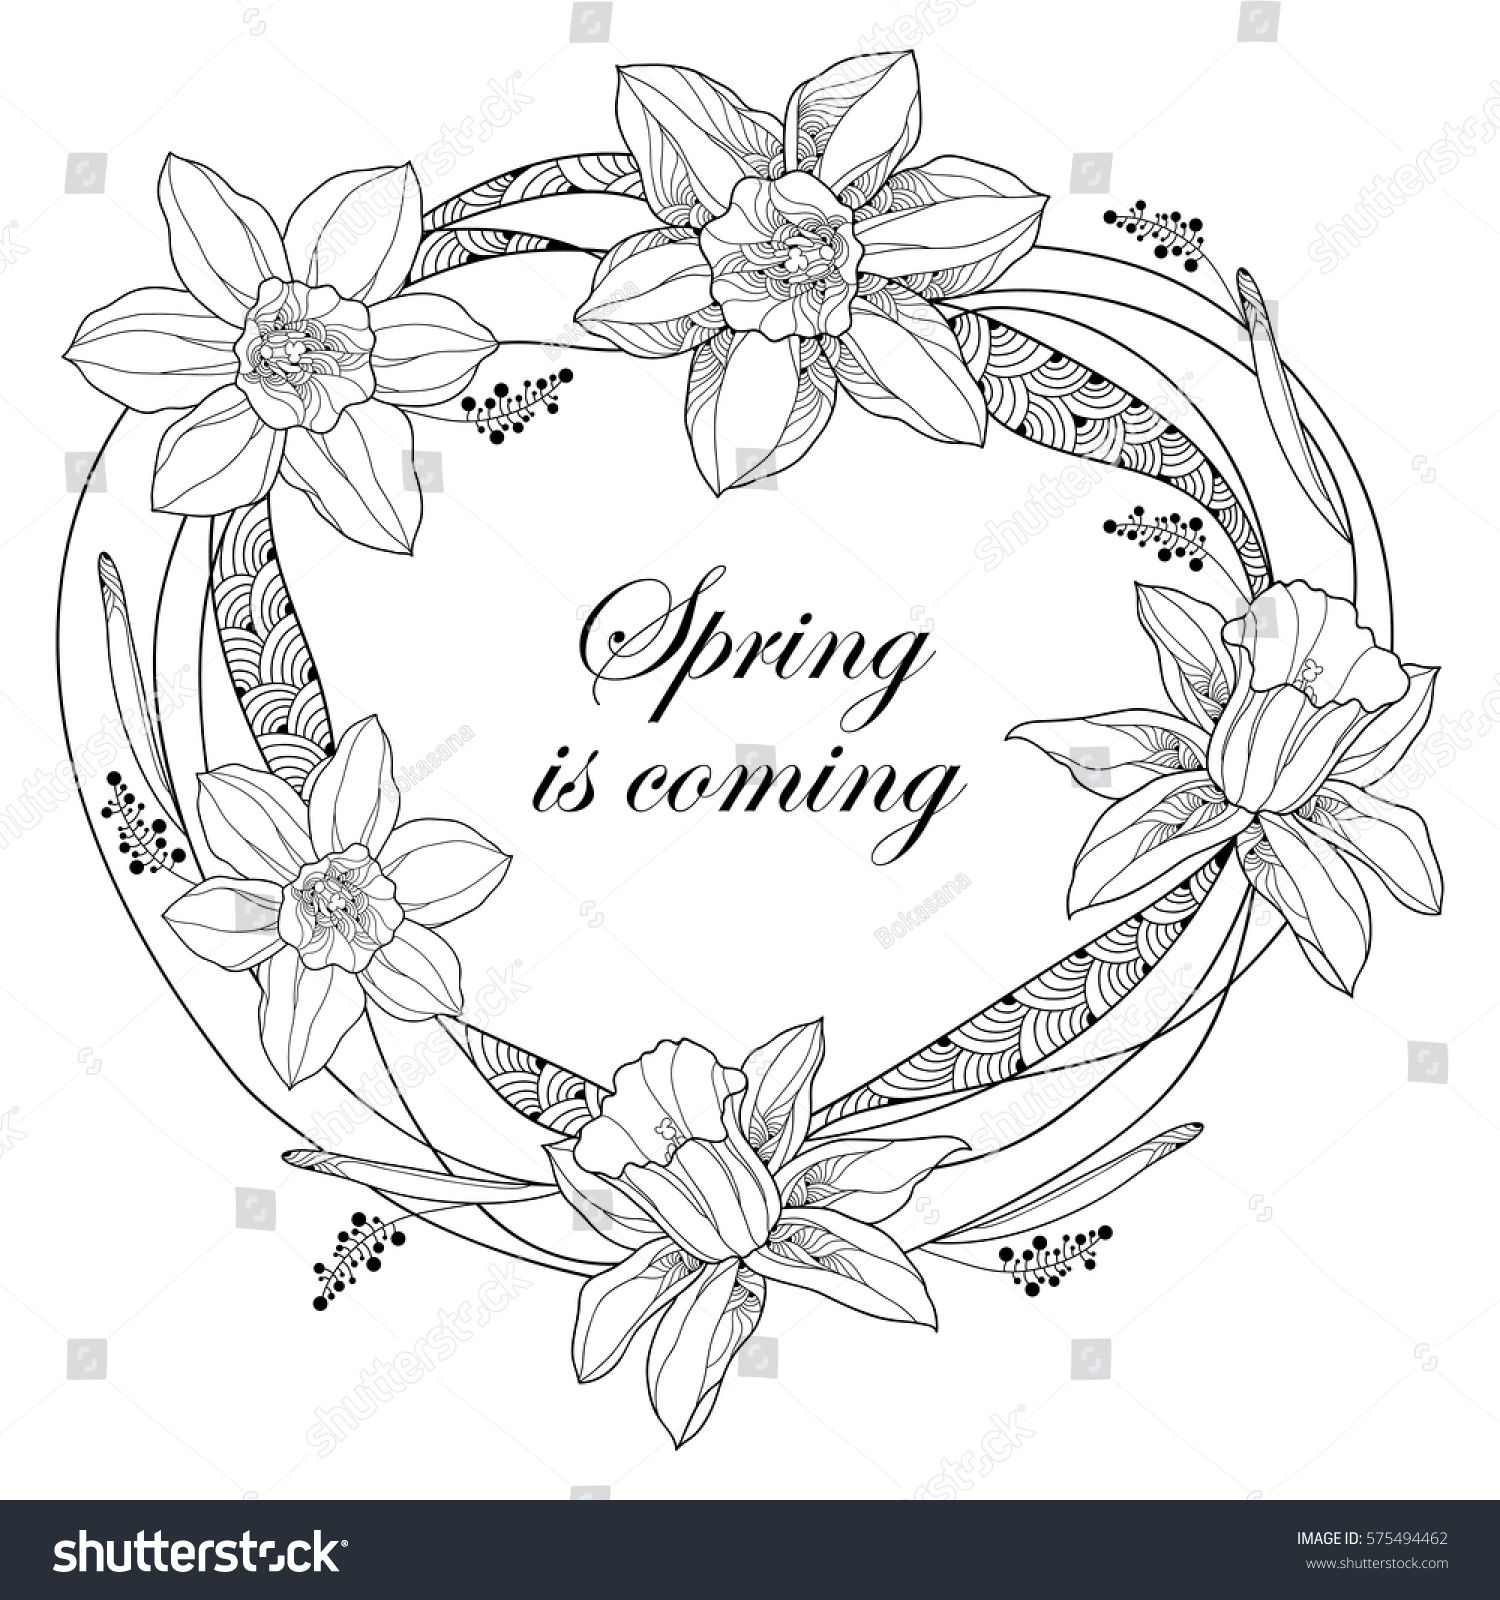 Vector round frame with pink flowers on white background in pastel - Vector Round Frame With Outline Narcissus Or Daffodil Flowers And Ornate Leaves Isolated On White Background